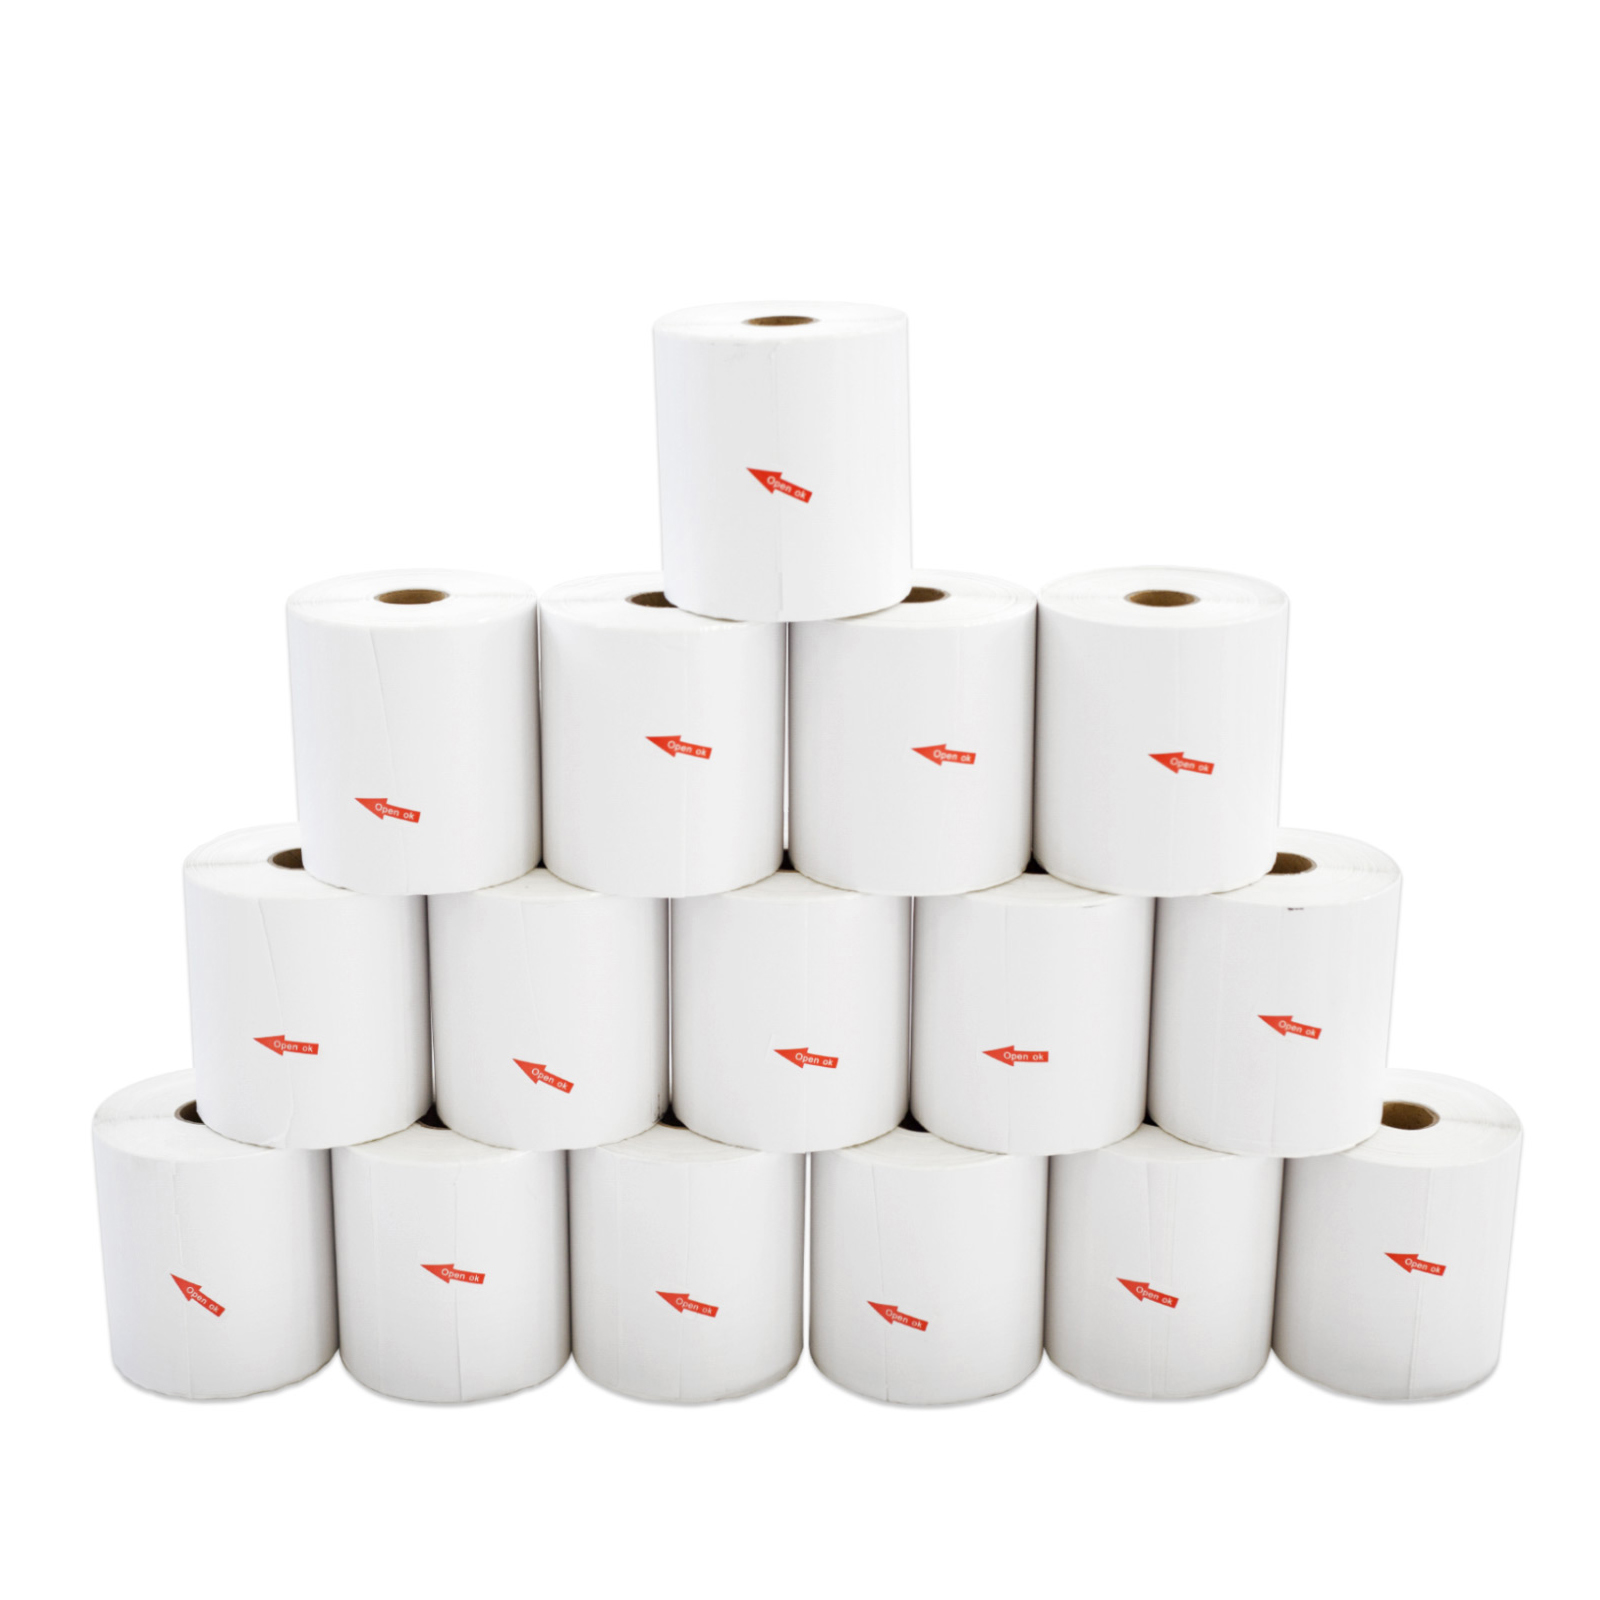 15 Rolls 25mm x 300pcs Thermal Label - Core